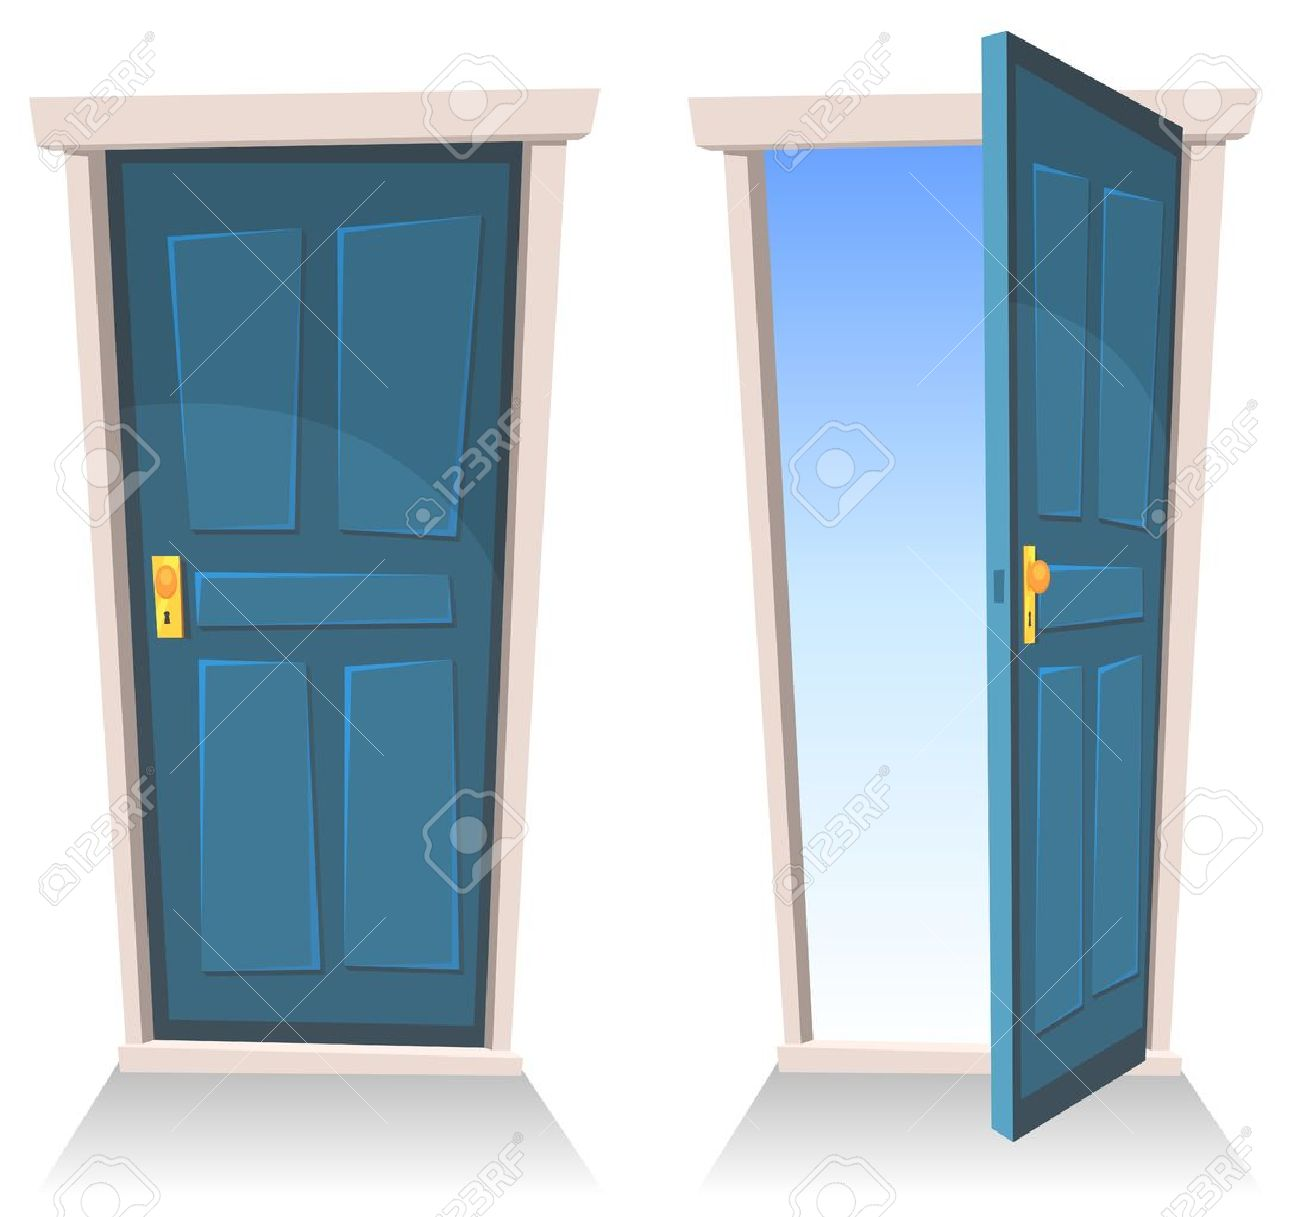 Illustration of a set of cartoon front doors opened and closed with sky background, symbolizing death frontier, paradise or heaven's gate - 18596071